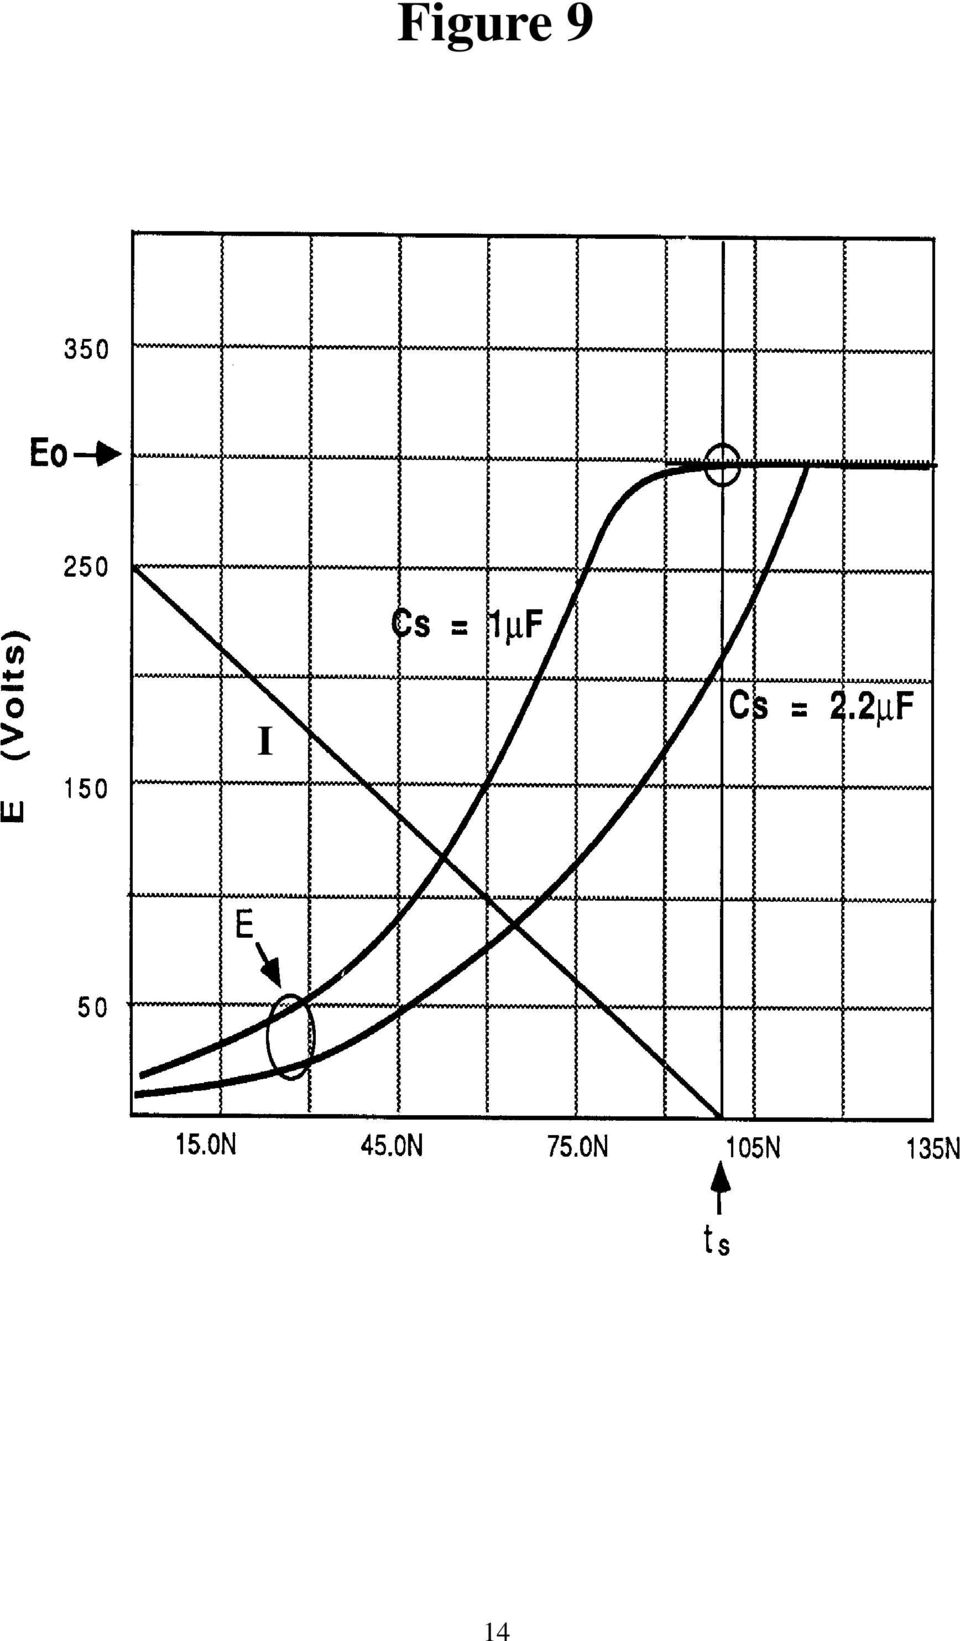 Design Of Snubbers For Power Circuits By Rudy Severns Pdf Snubber Thyristor Control Single Switch Based On The Net Result Is Much Lower Peak Stress And Switching Loss Voltage Waveforms Two Different Values C S Are Shown In This